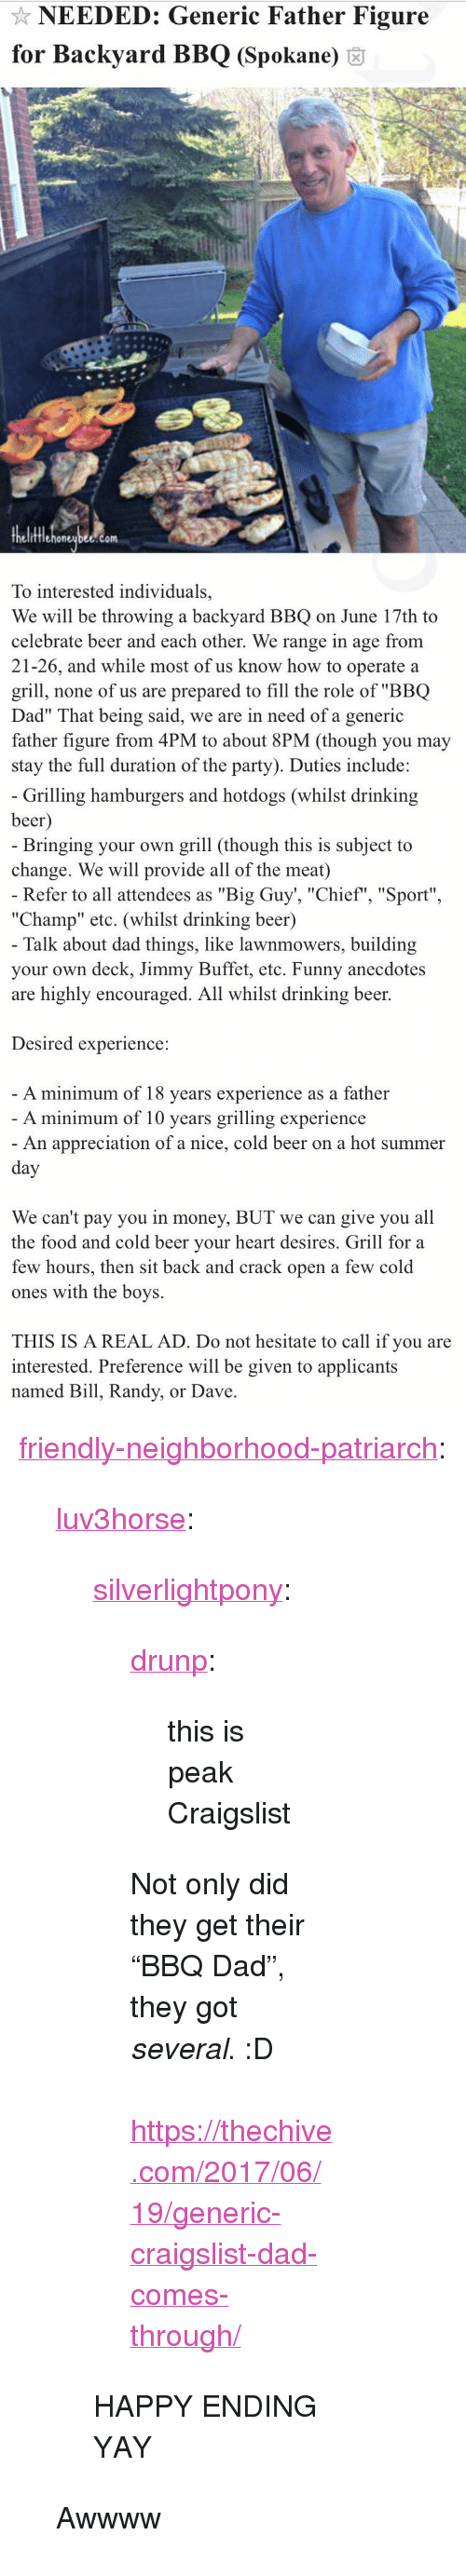 """Beer, Craigslist, and Dad: NEEDED: Generic Father Figure  for Backyard BBQ (Spokane) 6  fflehoneubee.com  To interested individuals,  We will be throwing a backyard BBQ on June 17th to  celebrate beer and each other. We range in age from  21-26, and while most of us know how to operate a  grill, none of us are prepared to fill the role of """"BBQ  Dad"""" That being said, we are in need of a generic  father figure from 4PM to about 8PM (though you may  stay the full duration of the party). Duties include:   Grilling hamburgers and hotdogs (whilst drinking  beer  Bringing your own grill (though this is subject to  change. We will provide all of the meat)  Refer to all attendees as """"Big Guy', """"Chief"""", """"Sport""""  """"Champ"""" etc. (whilst drinking beer)  Talk about dad things, like lawnmowers, building  your own deck, Jimmy Buffet, etc. Funny anecdotes  are highly encouraged. All whilst drinking beer.  Desired experience:  A minimum of 18 vears experience as a father  A minimum of 10 years grilling experience  An appreciation of a nice, cold beer on a hot summer  We can't pay you in money, BUT we can give you all  the food and cold beer vour heart desires. Grill for a  few hours, then sit back and crack open a few cold  ones with the boys.  THIS IS A REAL AD. Do not hesitate to call if you are  interested. Preference will be given to applicants  named Bill, Randy, or Dave <p><a href=""""http://friendly-neighborhood-patriarch.tumblr.com/post/170766193952/luv3horse-silverlightpony-drunp-this-is"""" class=""""tumblr_blog"""">friendly-neighborhood-patriarch</a>:</p><blockquote> <p><a href=""""http://luv3horse.tumblr.com/post/164653478181/silverlightpony-drunp-this-is-peak-craigslist"""" class=""""tumblr_blog"""">luv3horse</a>:</p> <blockquote> <p><a href=""""https://silverlightpony.tumblr.com/post/162259709552/drunp-this-is-peak-craigslist-not-only-did-they"""" class=""""tumblr_blog"""">silverlightpony</a>:</p>  <blockquote> <p><a href=""""https://drunp.tumblr.com/post/161376664752/this-is-peak-craigslist"""" class=""""tumblr_blo"""